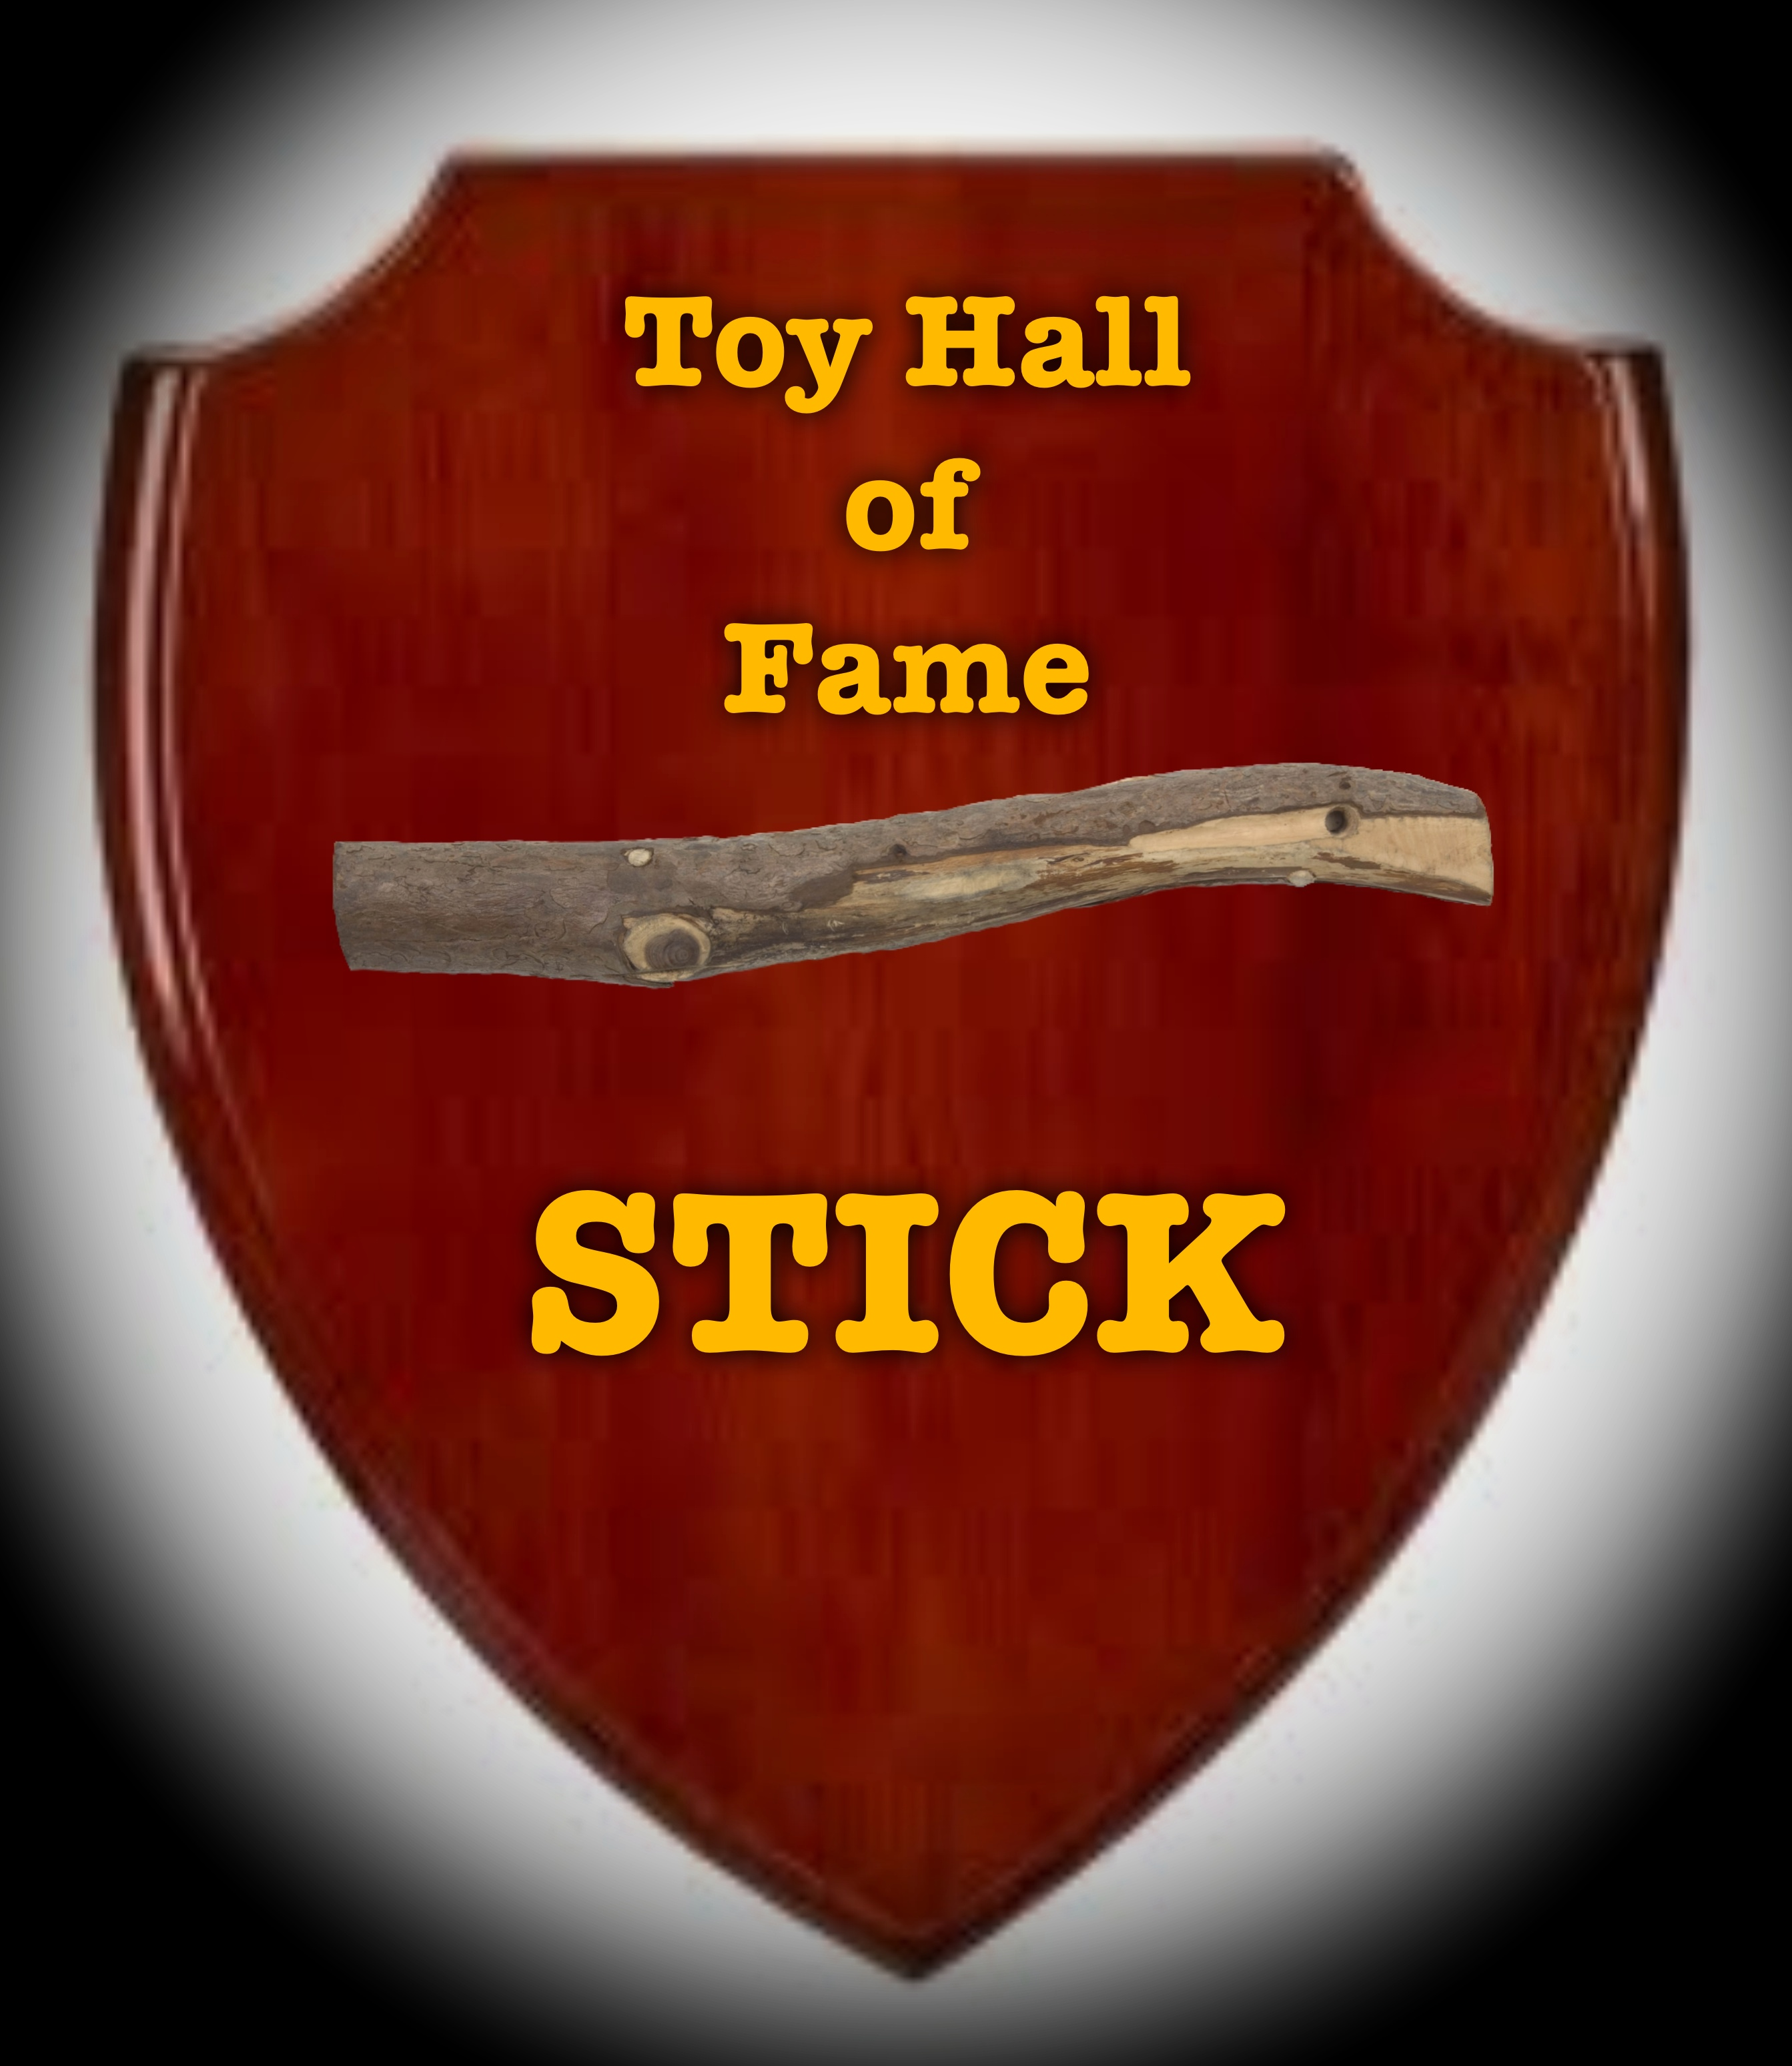 21-Toy Hall of Fame